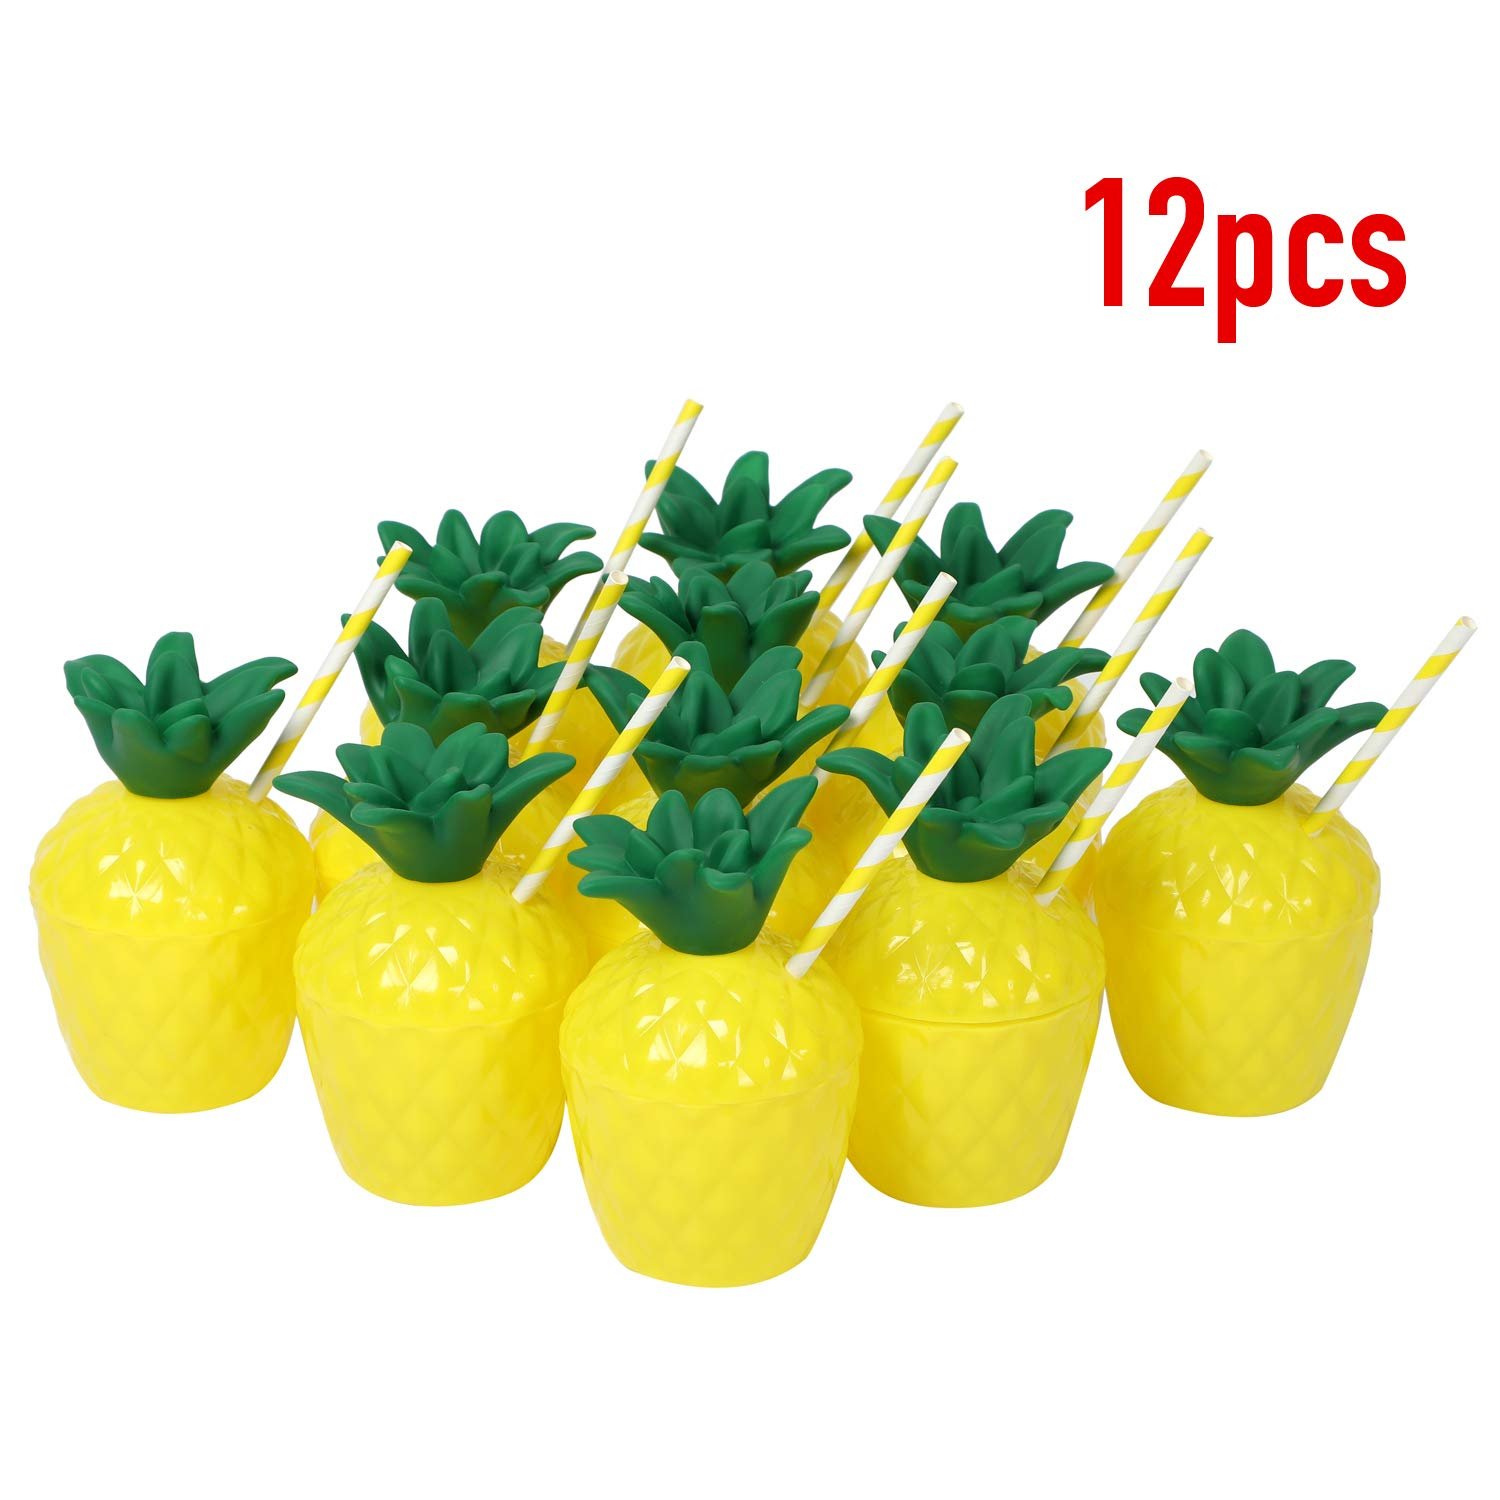 Fuyage 12pcs*10oz Novelty Plastic Pineapple Cups with Paperstraws for Hawaiian Luau Party Kids Beach Party by Fuyage